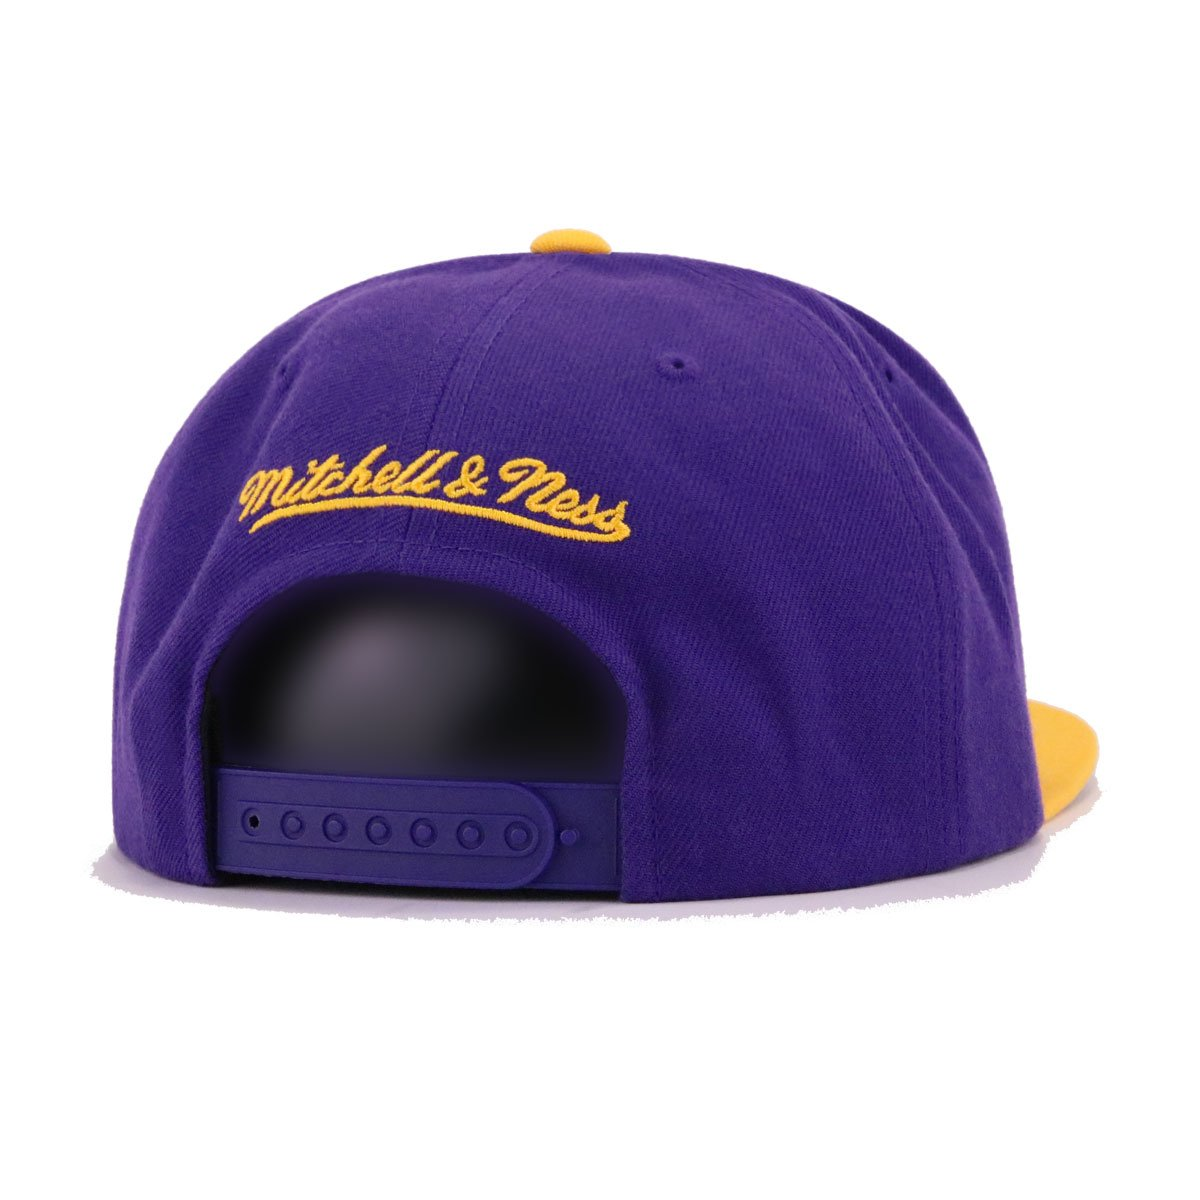 Los Angeles Lakers Deep Purple A's Gold Mitchell and Ness Snapback